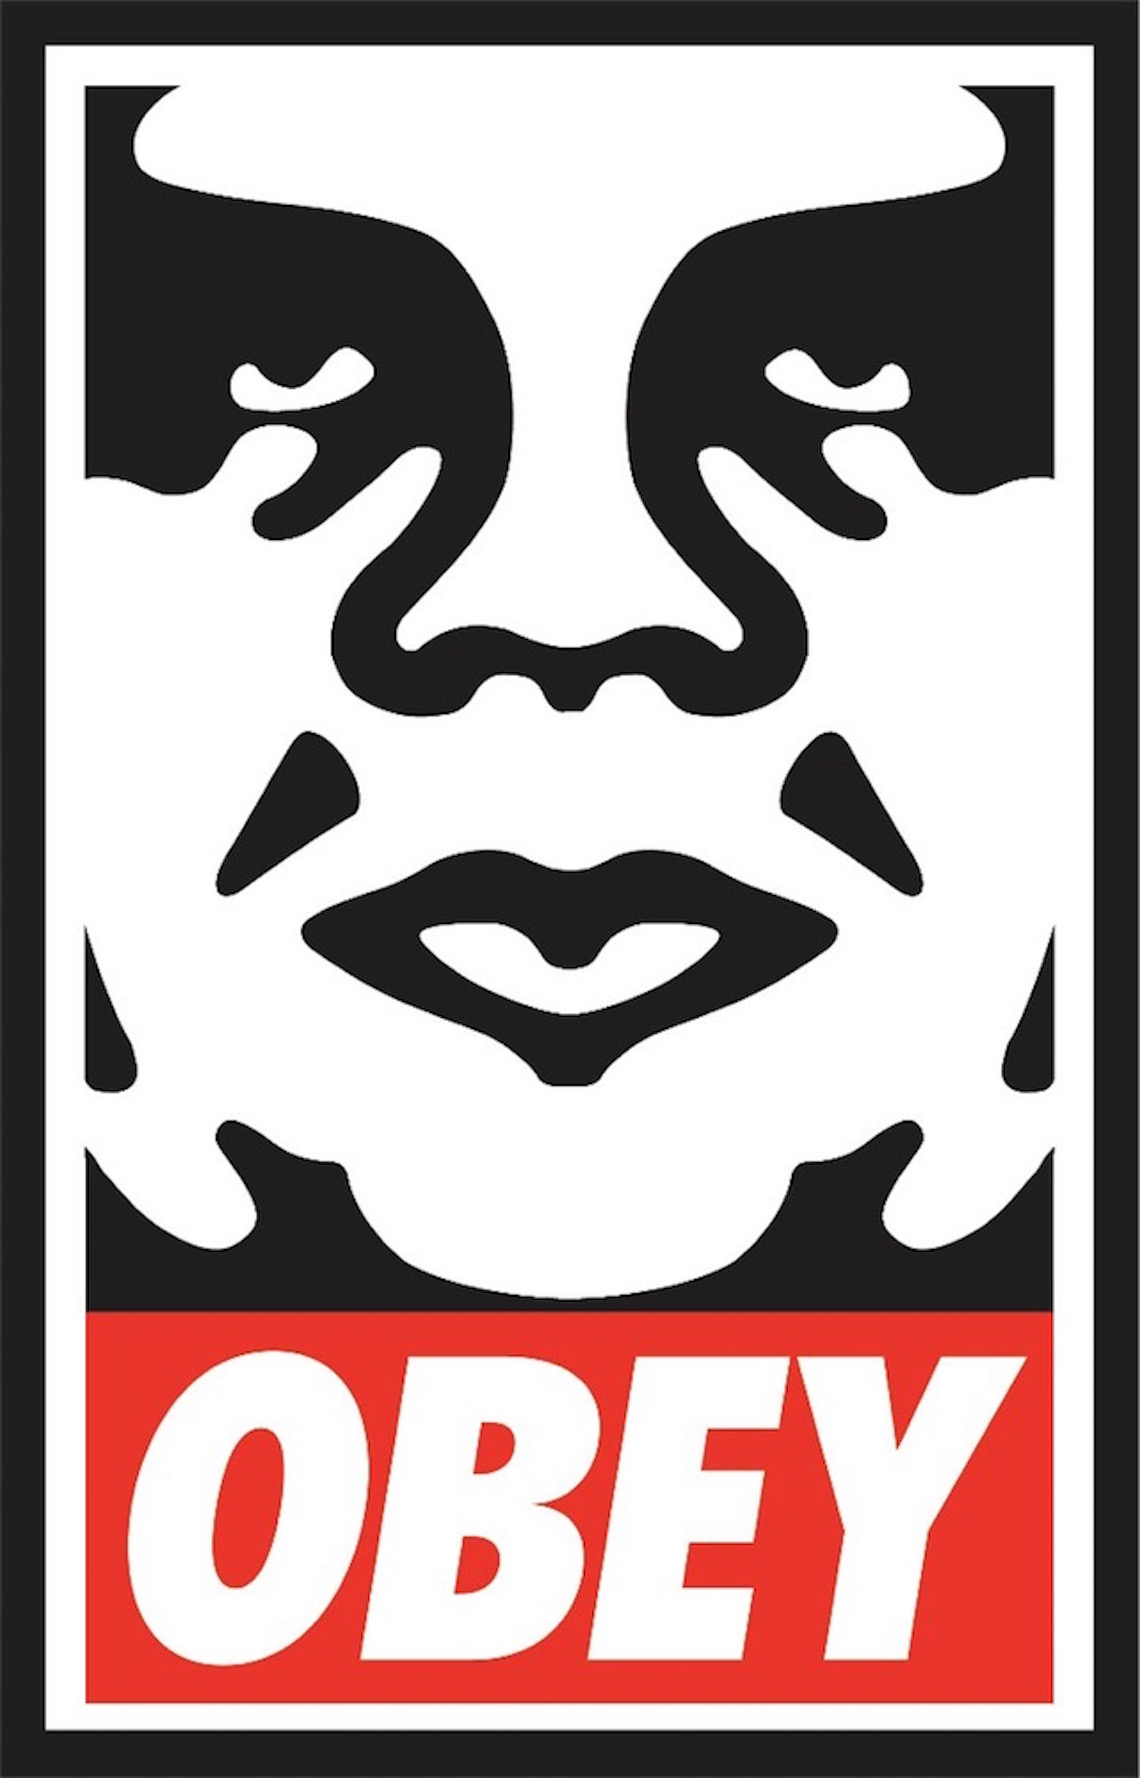 Shepard Fairey, creator of Obey. The street art icon in ...